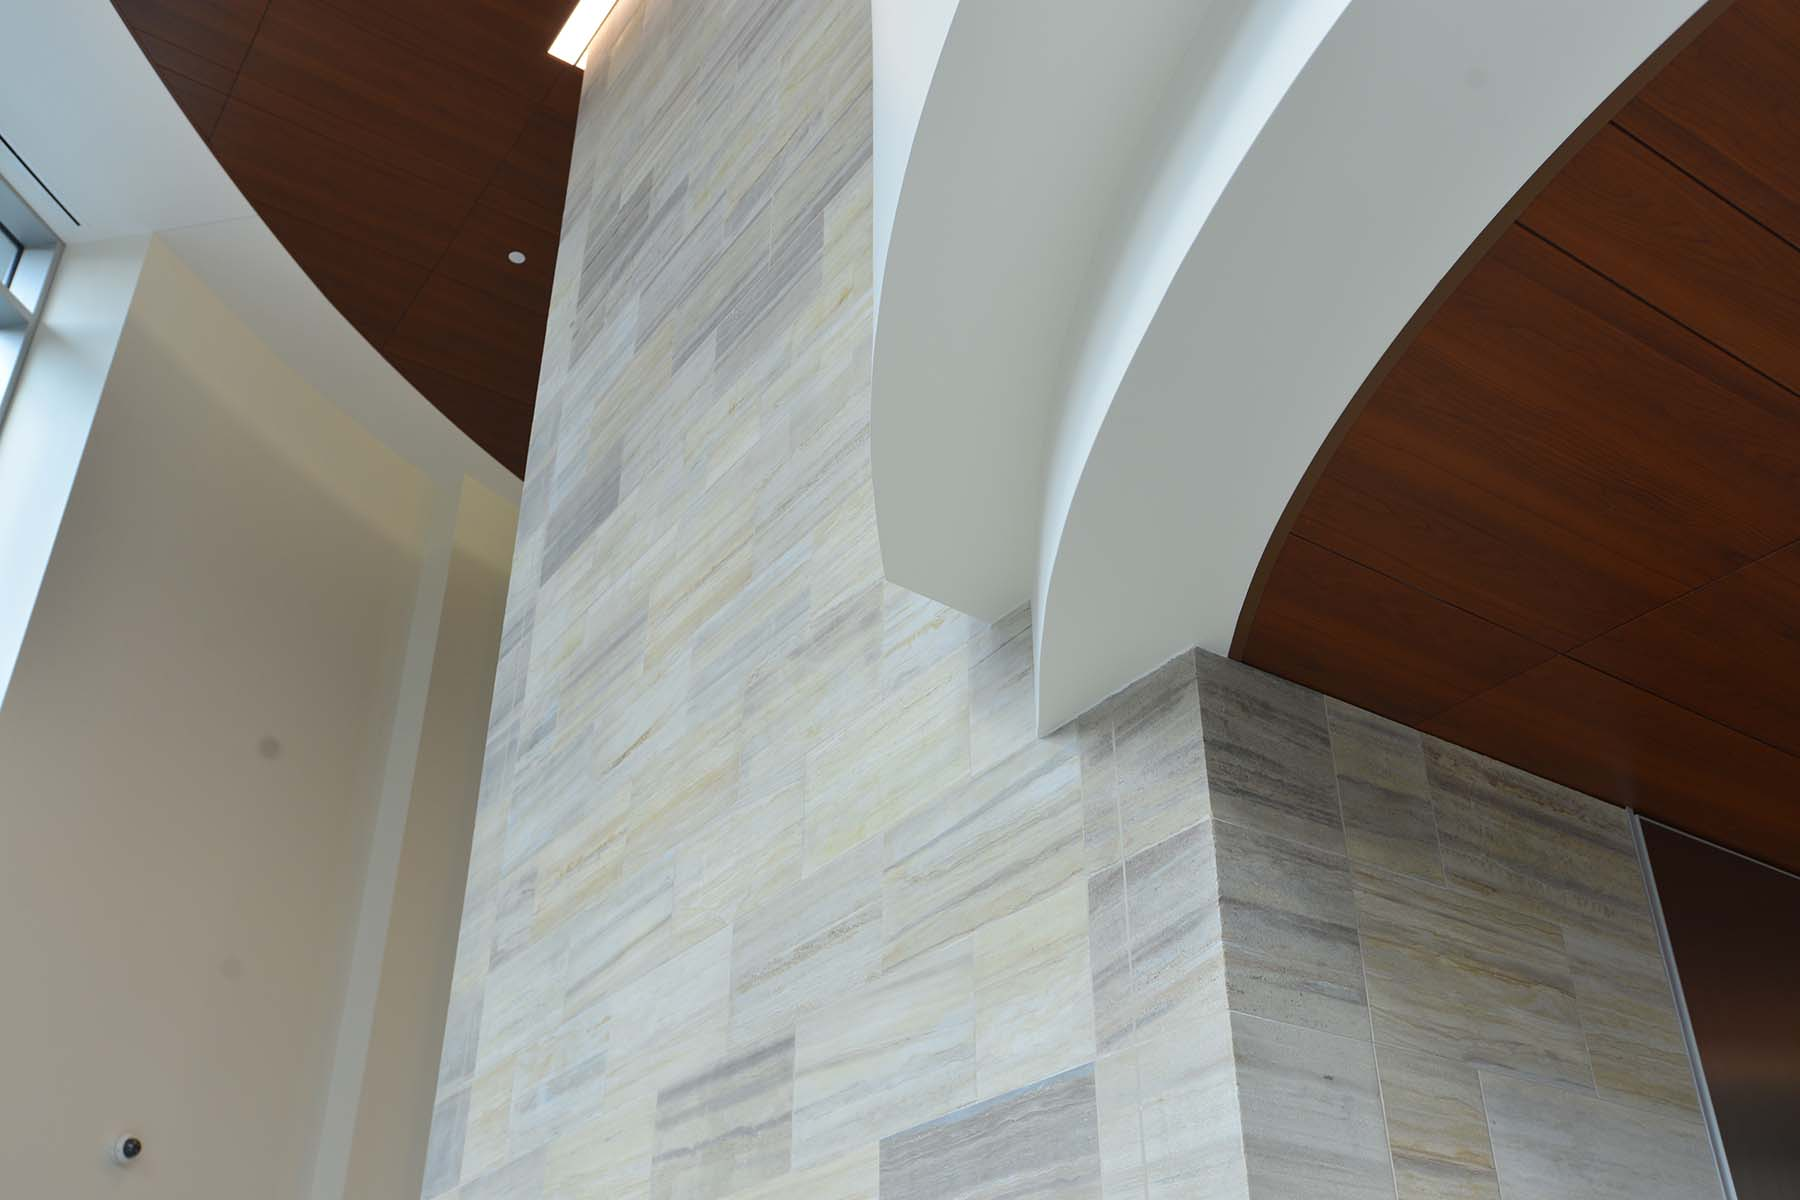 natural stone indoor wall for inova fairfax hospital